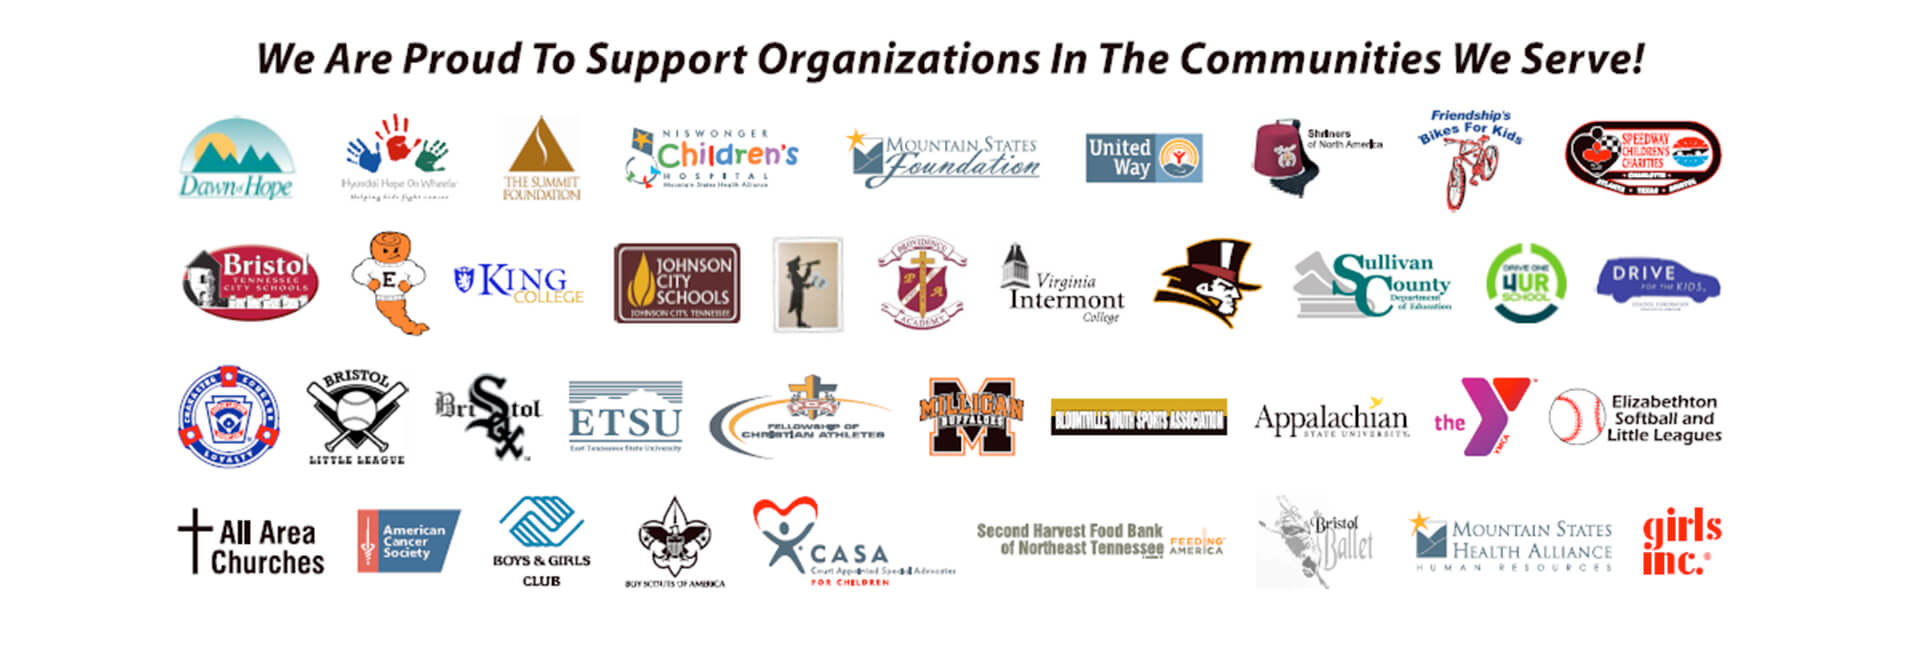 We are proud to support the organizations in the communities we serve!